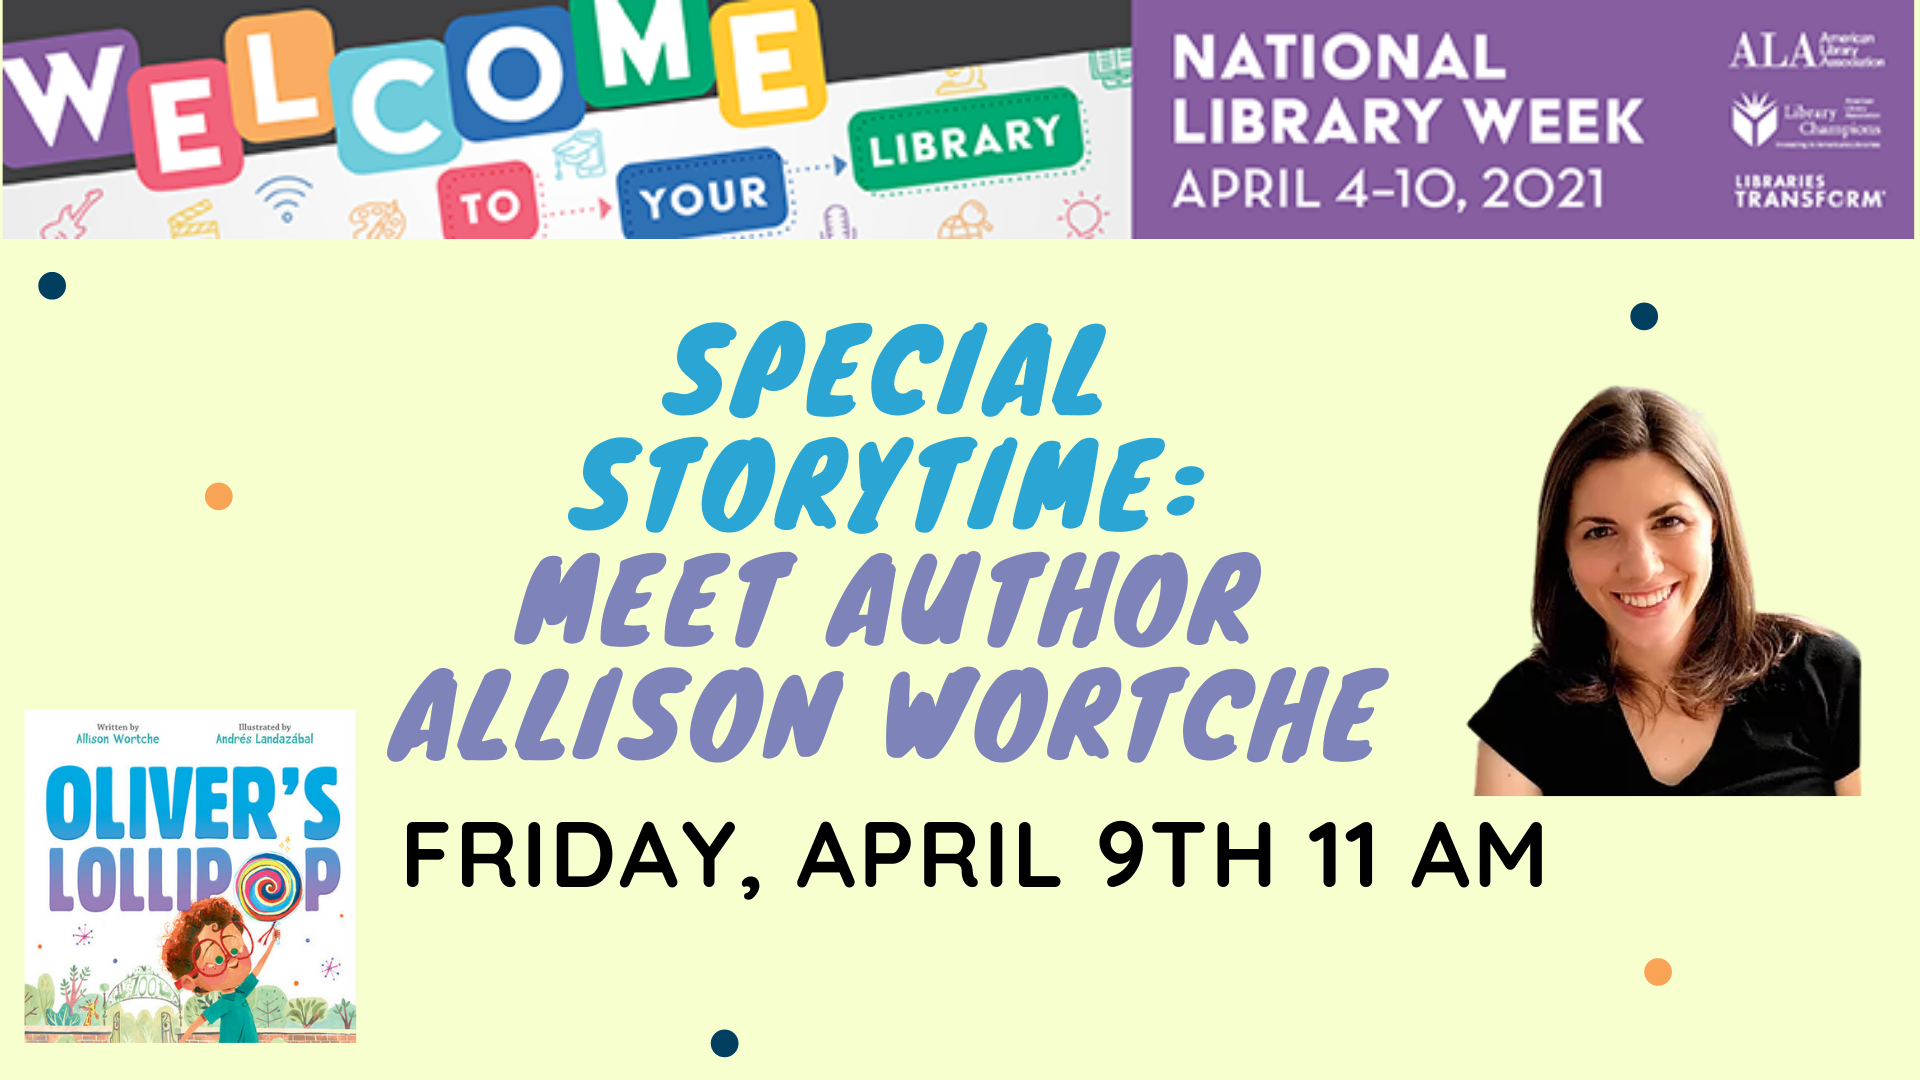 Special Storytime - Meet Author Allison Wortche